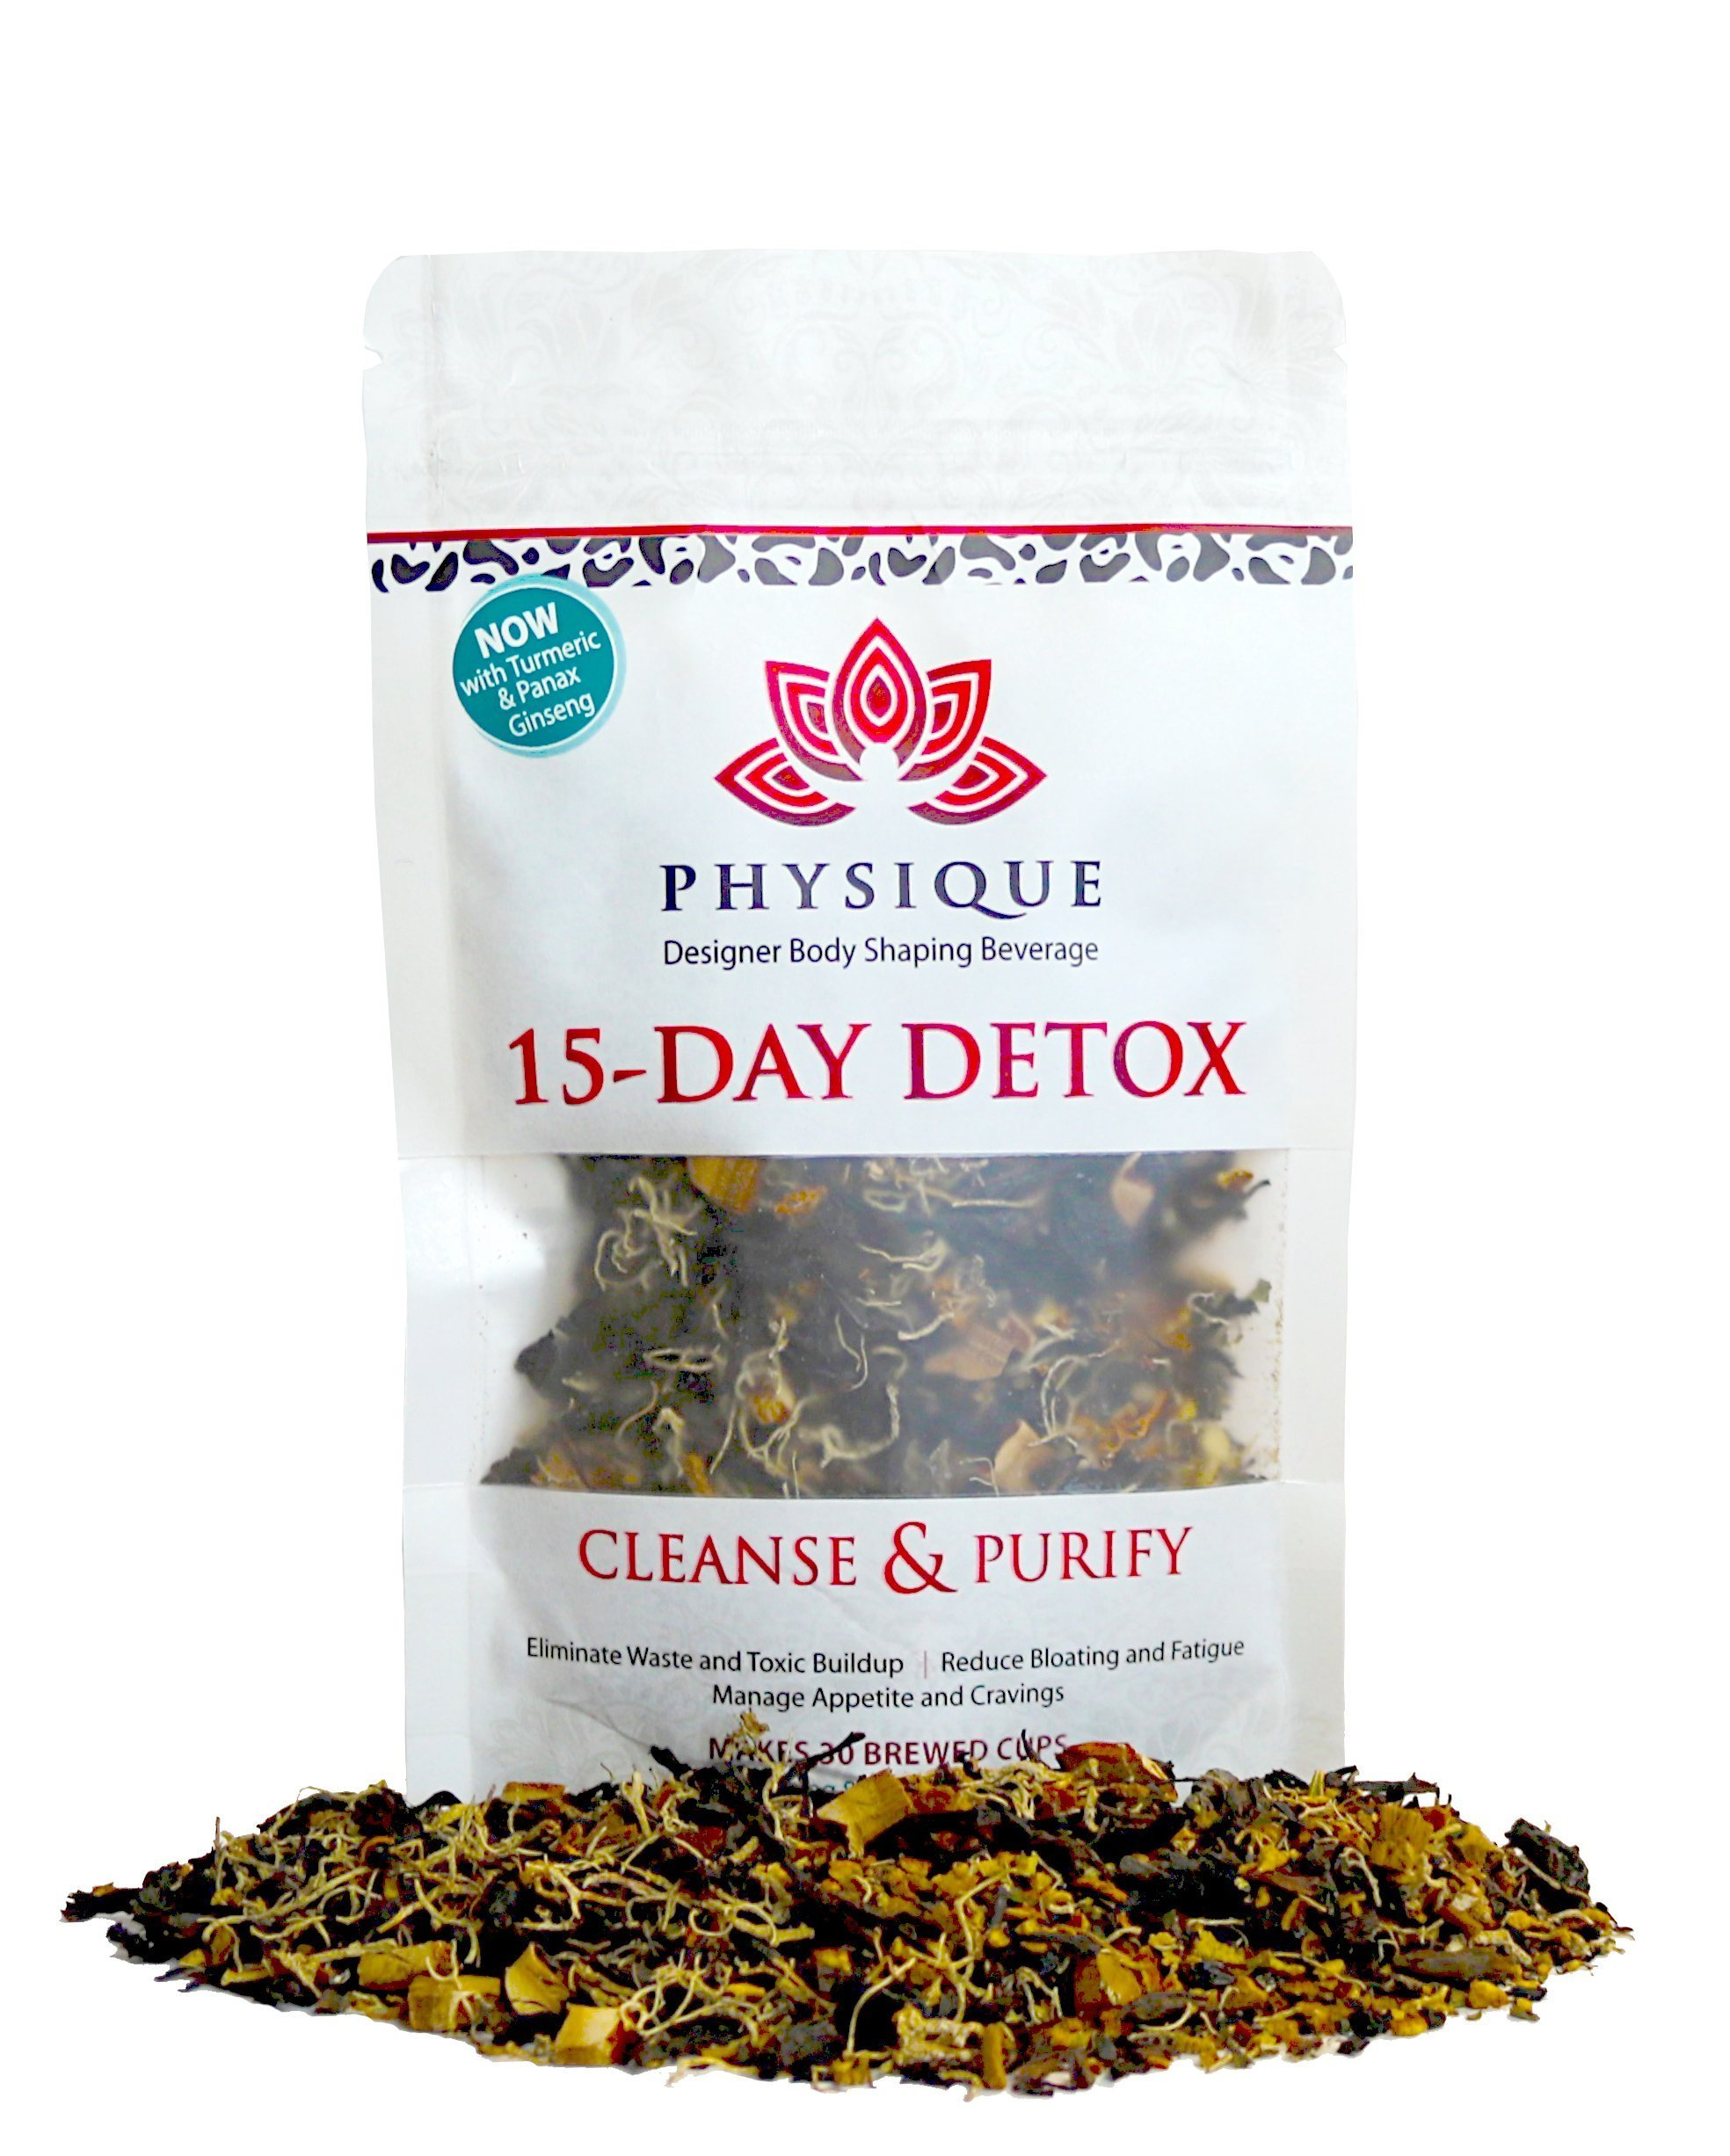 15 Day Total Body Cleanse and Weight Loss Tea | Reduce Bloating, Hunger and a Big Tummy | Garcinia Cambogia & Turmeric Premium Blend | Anti-Inflammatory & Laxative Free Teatox | Detox Diet Included by Physique